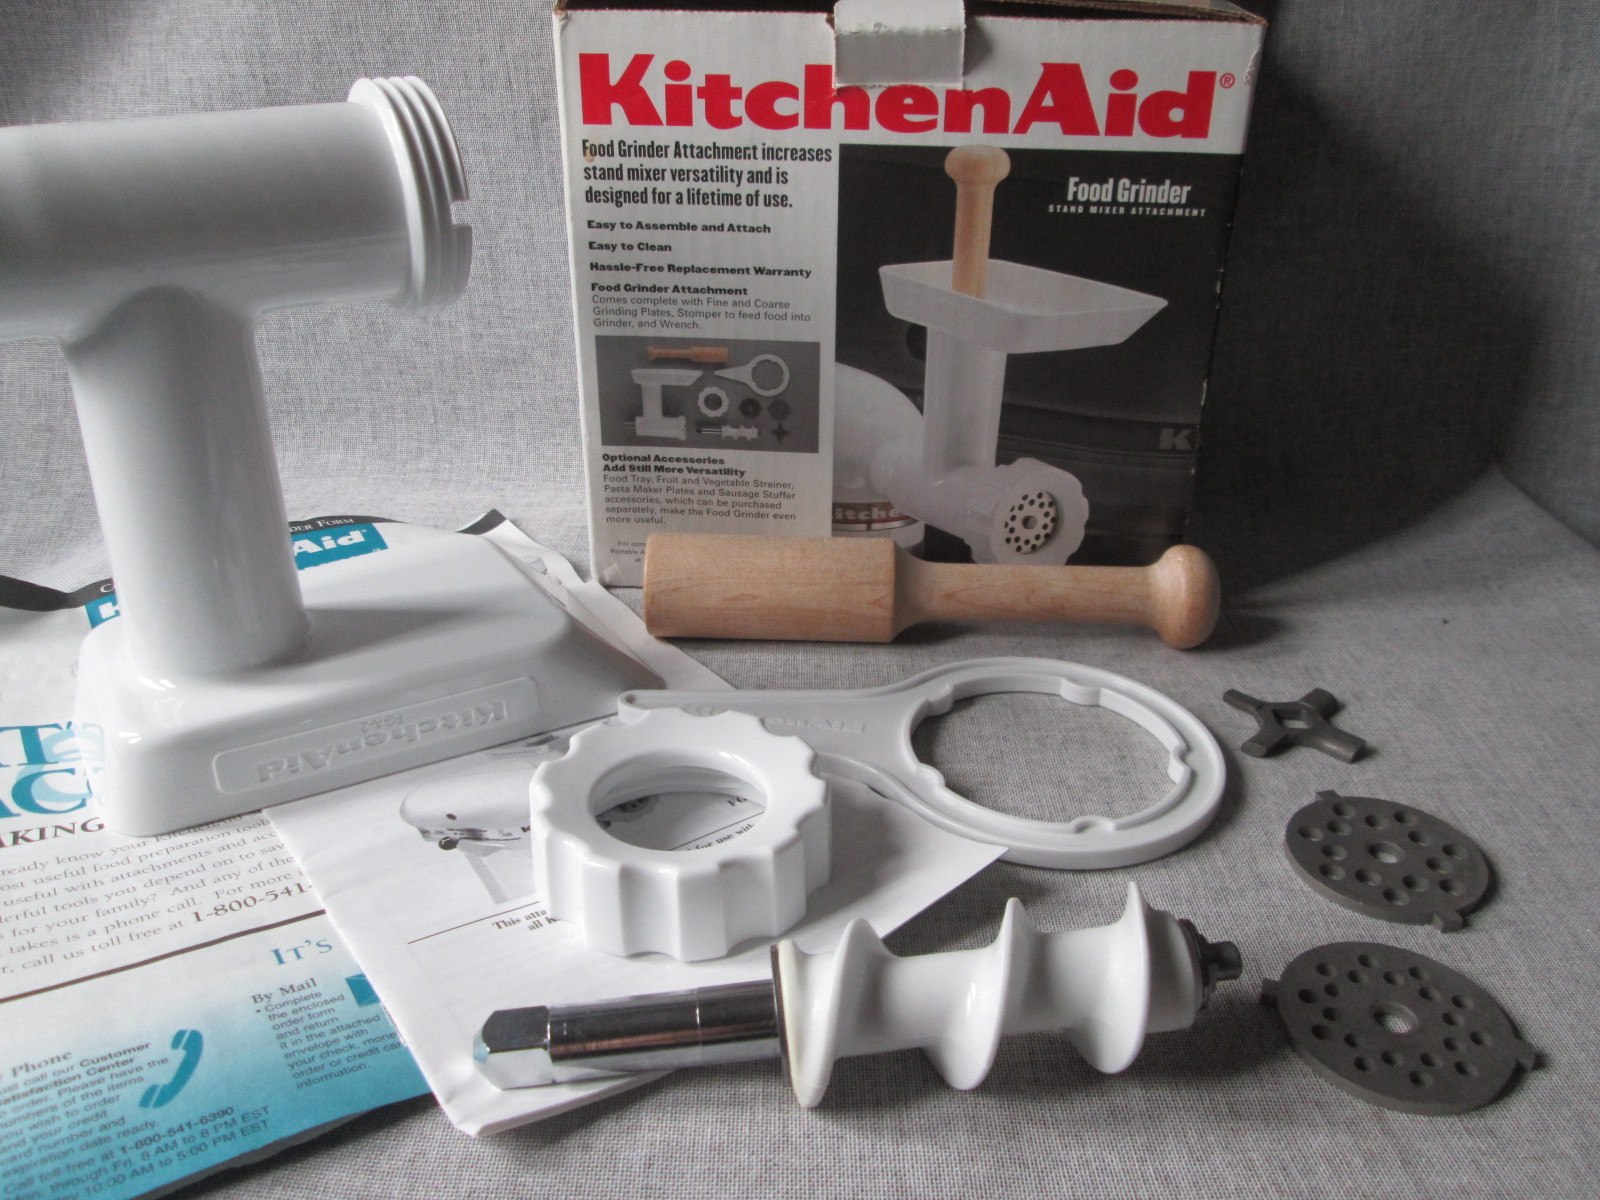 Kitchenaid Stand Mixer Food Grinder Attachment Fga